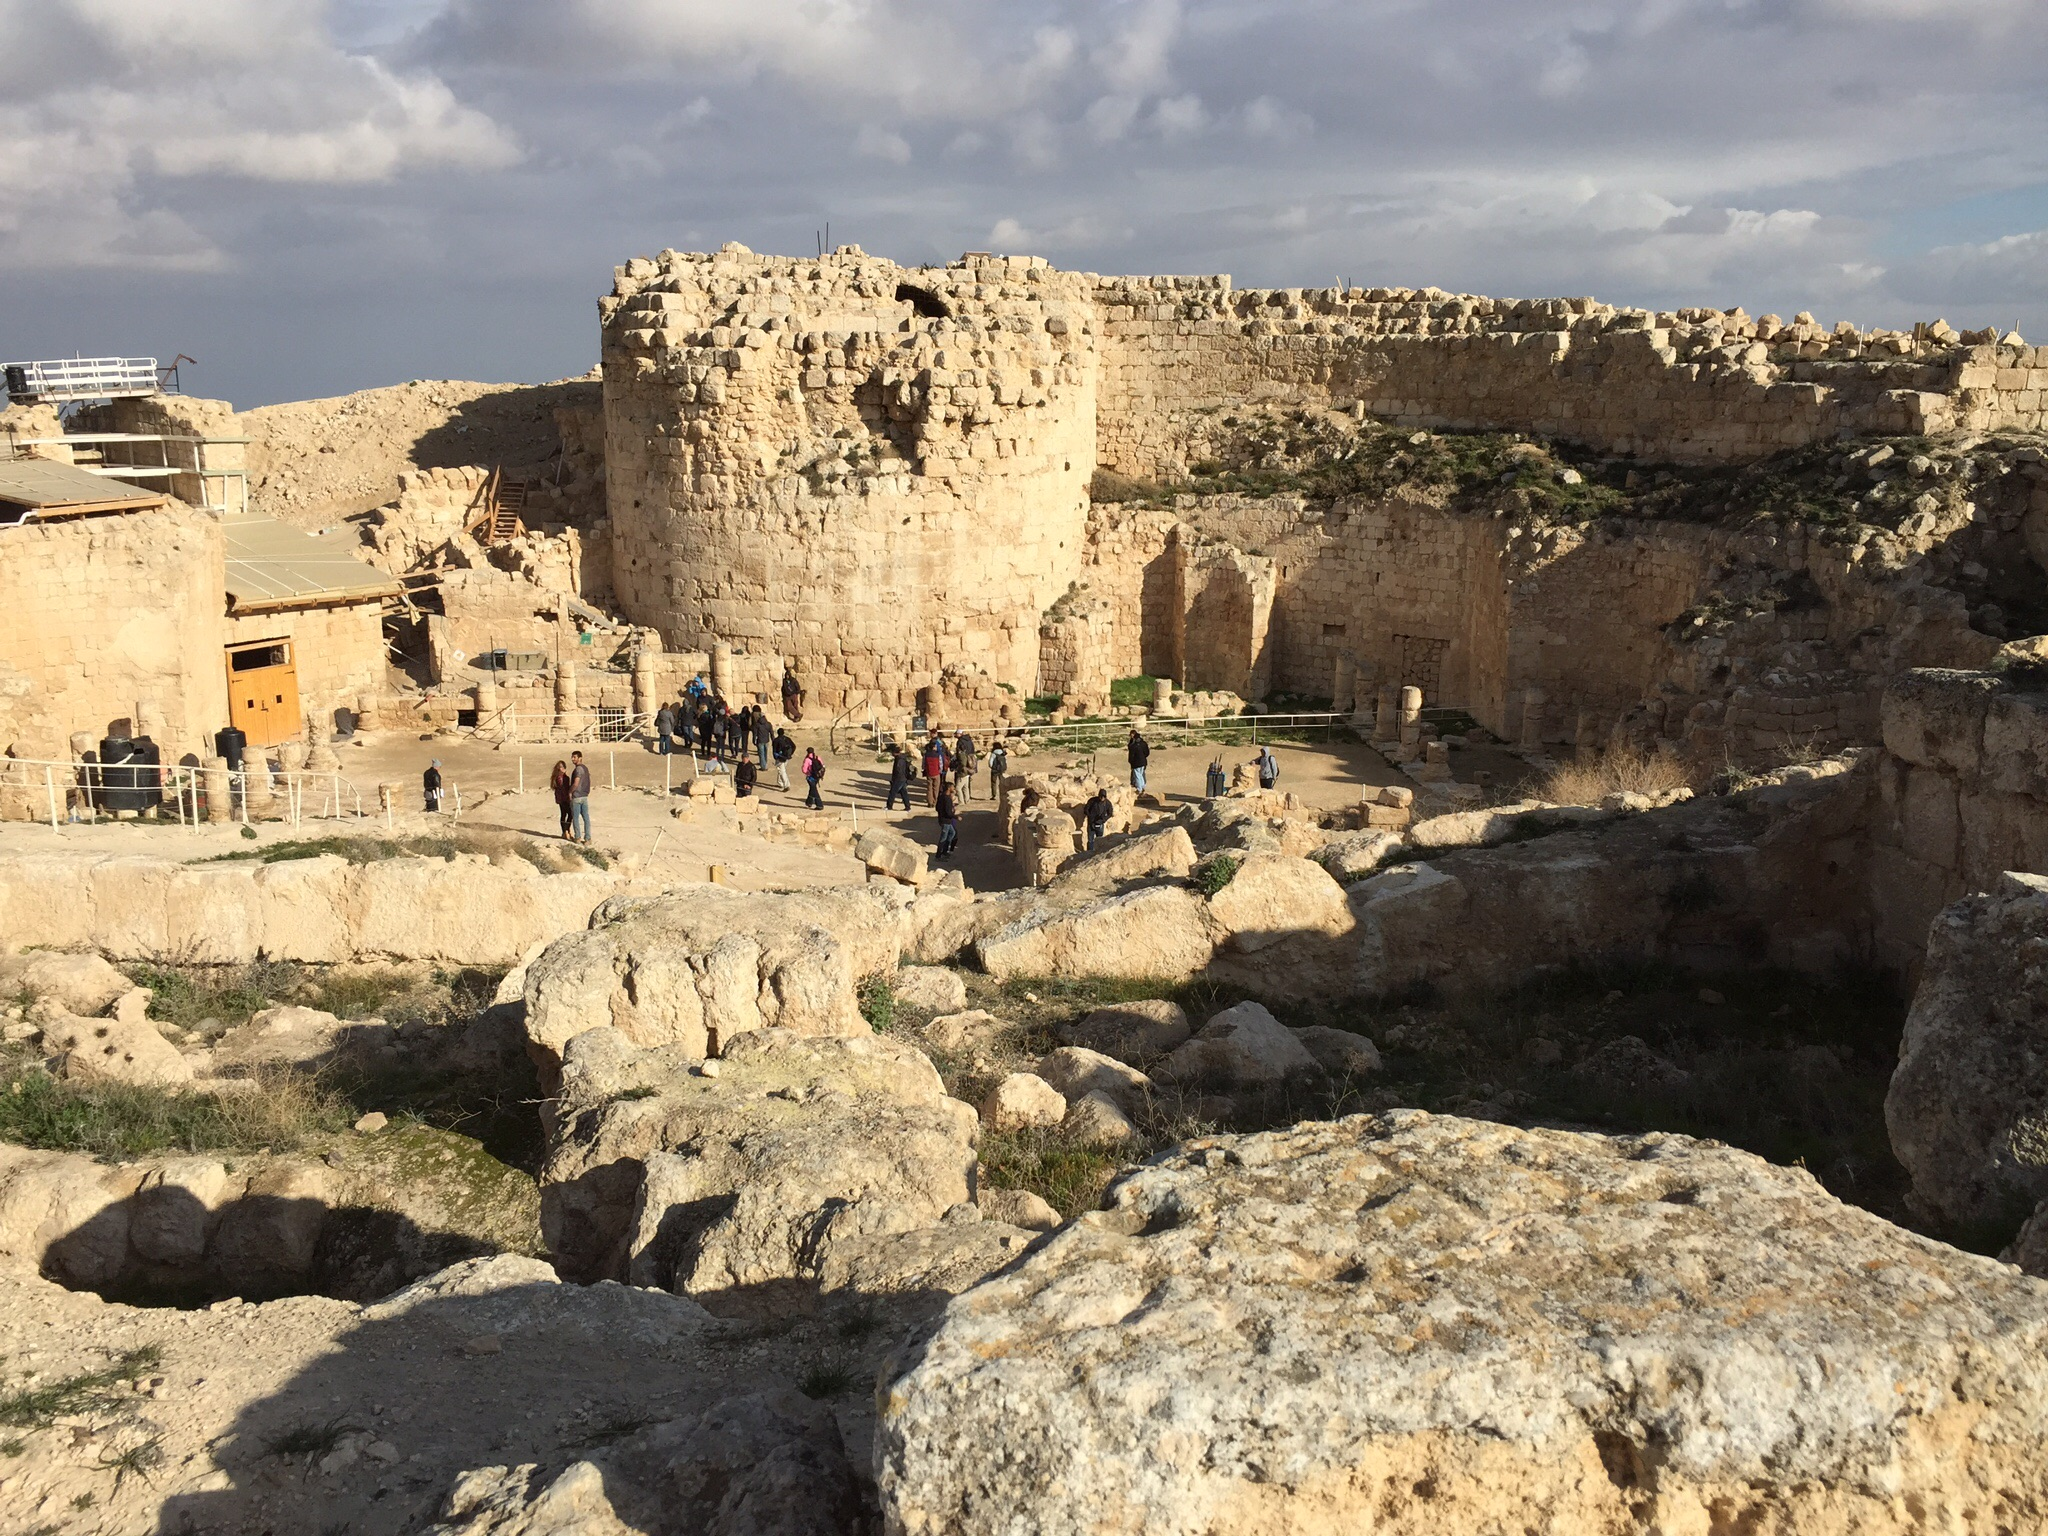 This huge palace is 1,700 years older than anything in the USA.